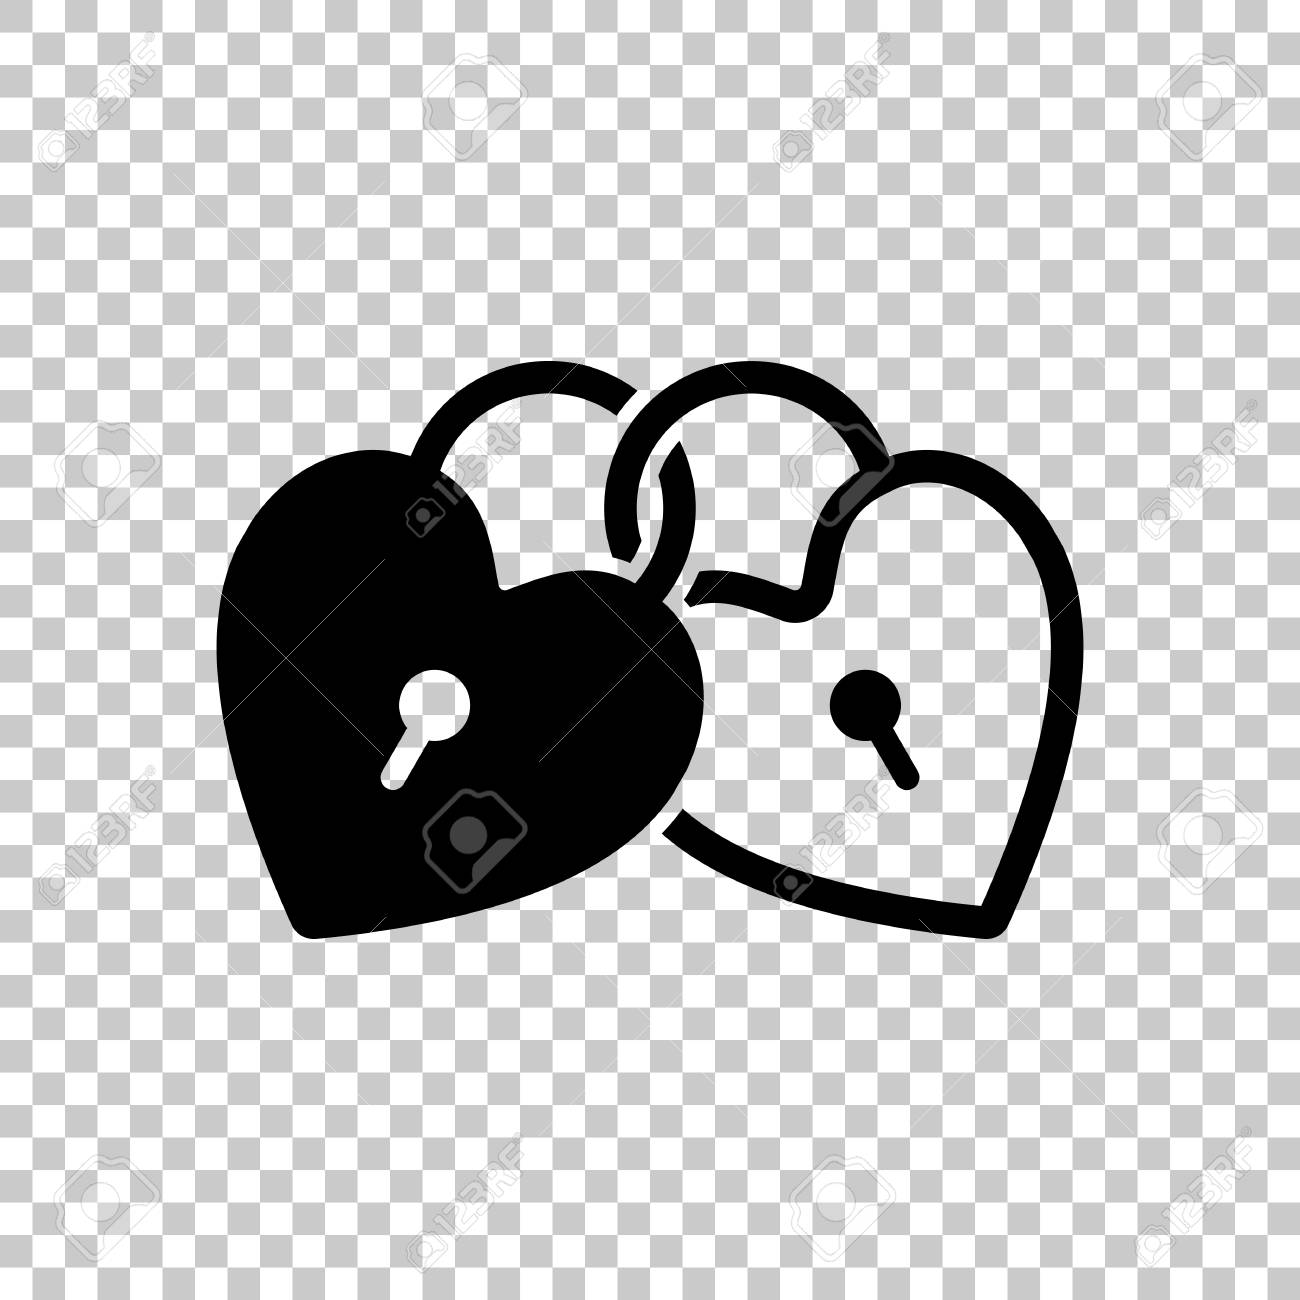 linked hearts lock icon on transparent background royalty free